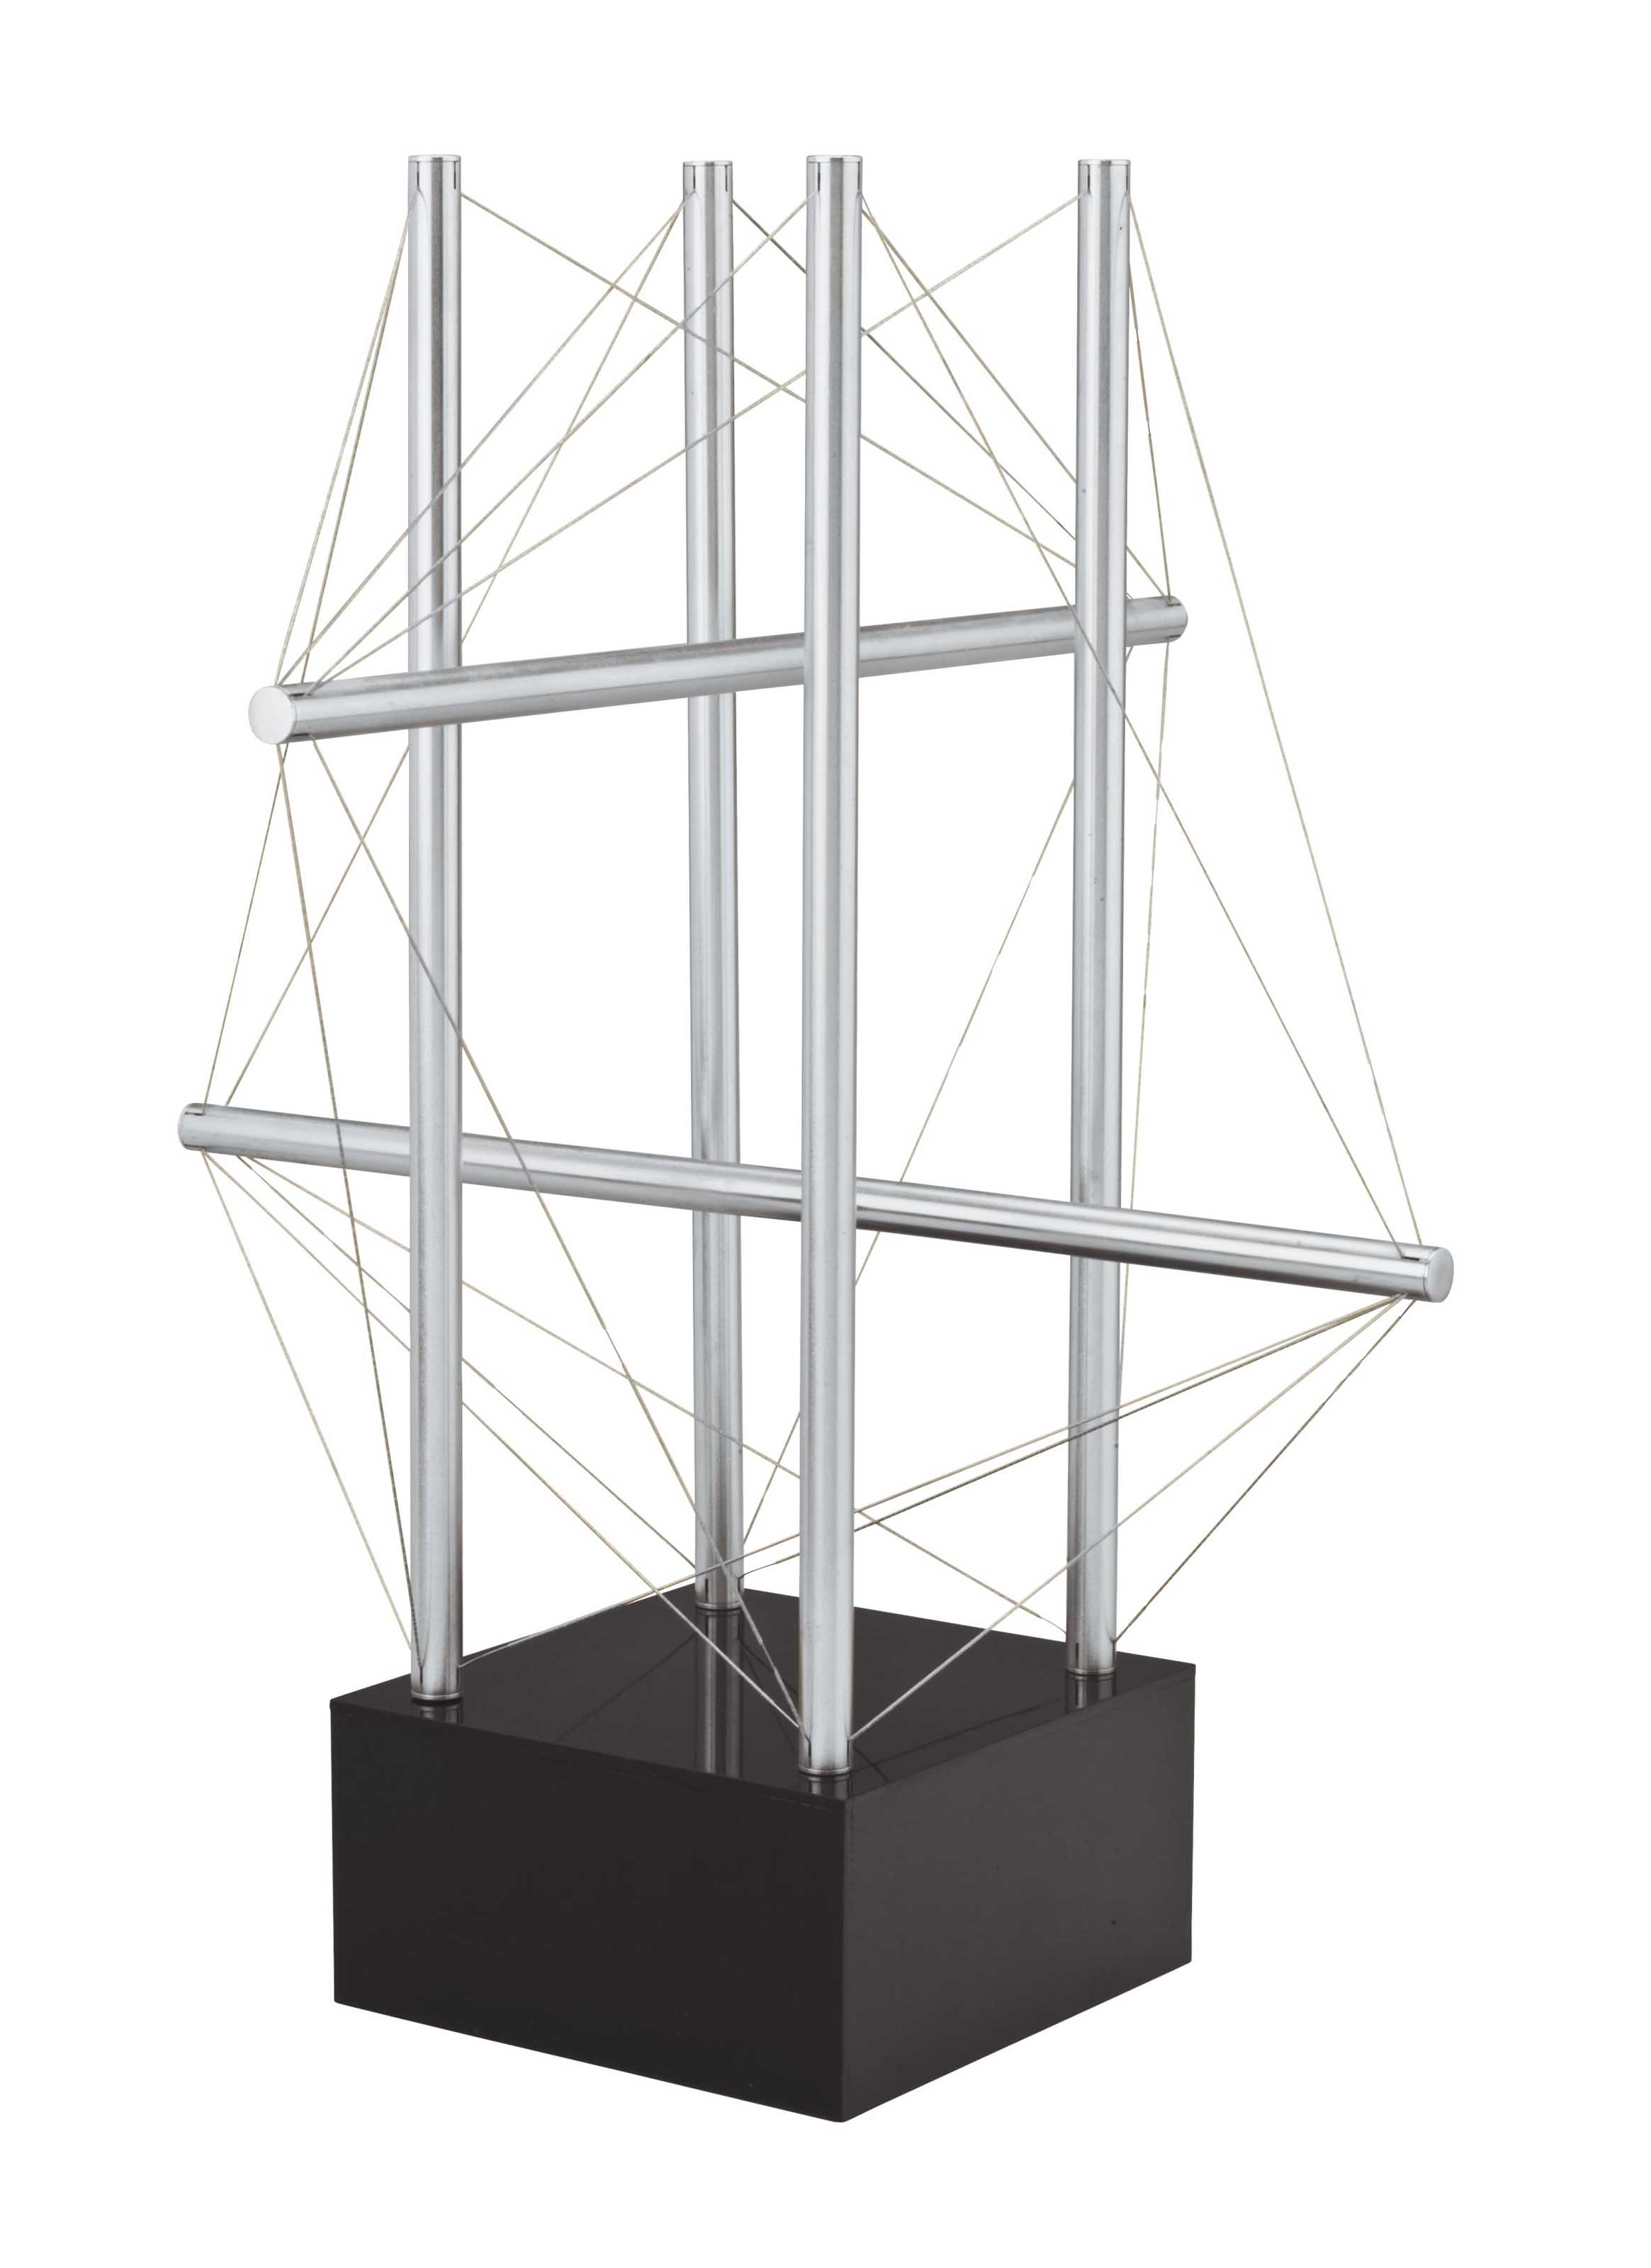 Maquette for Six #2